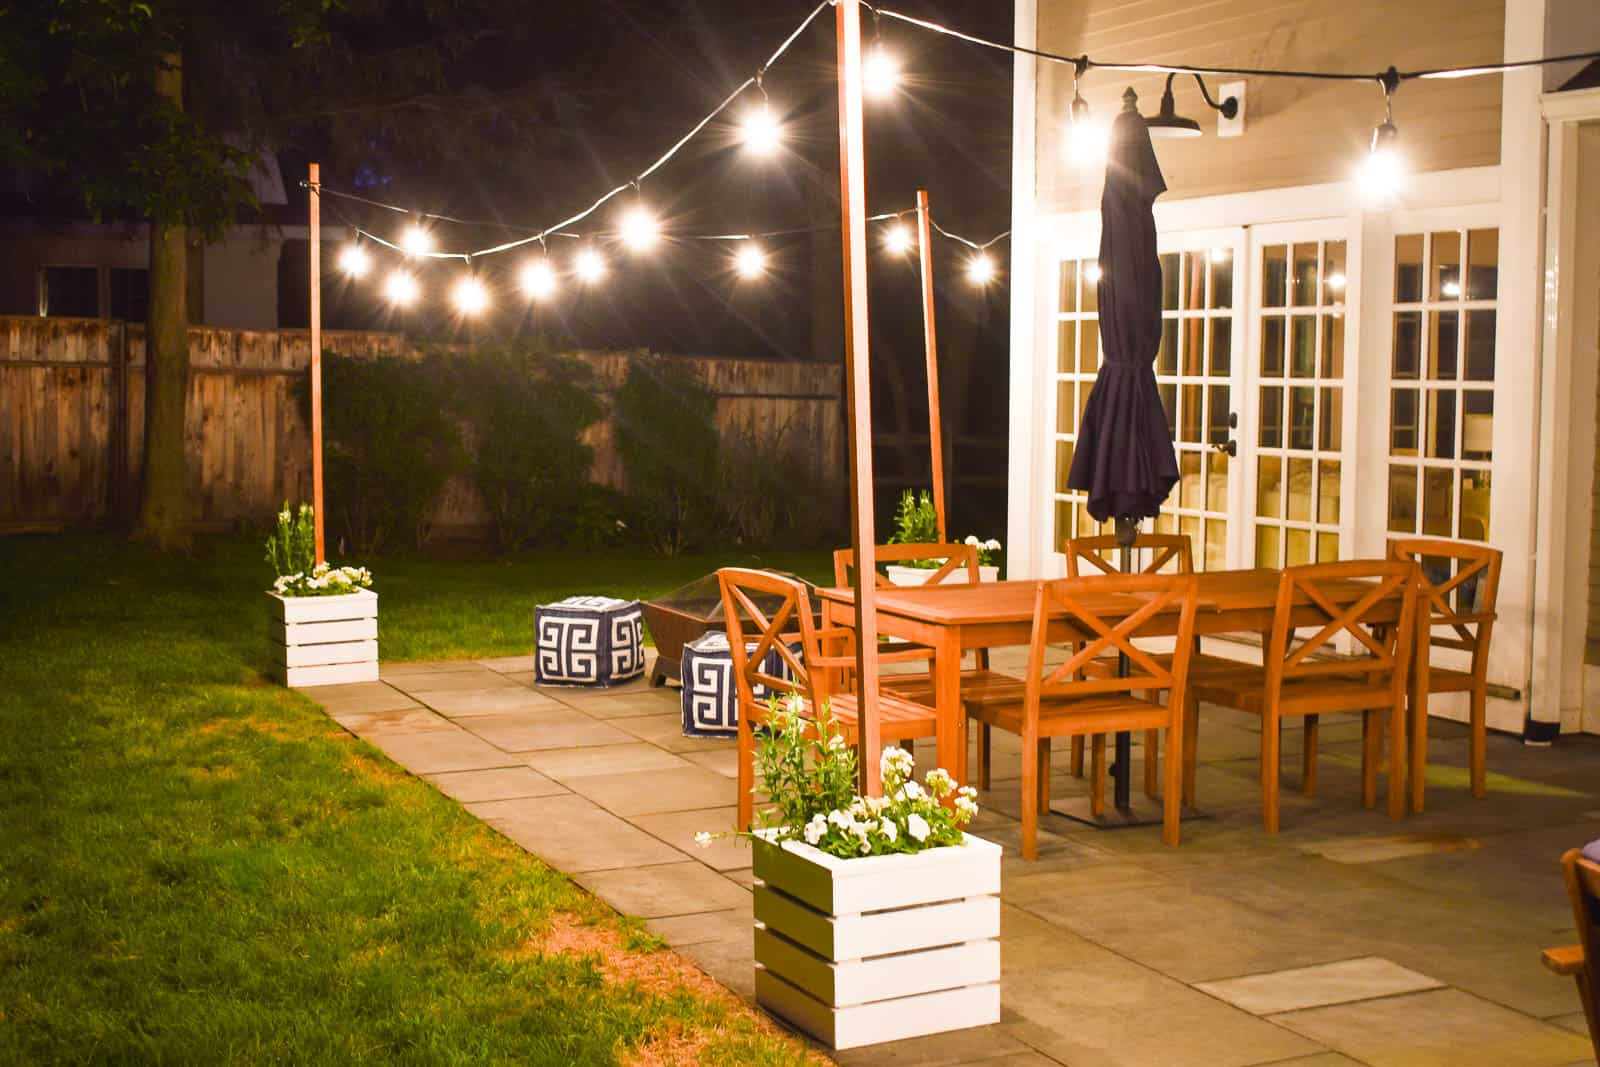 diy planter with pole for string lights